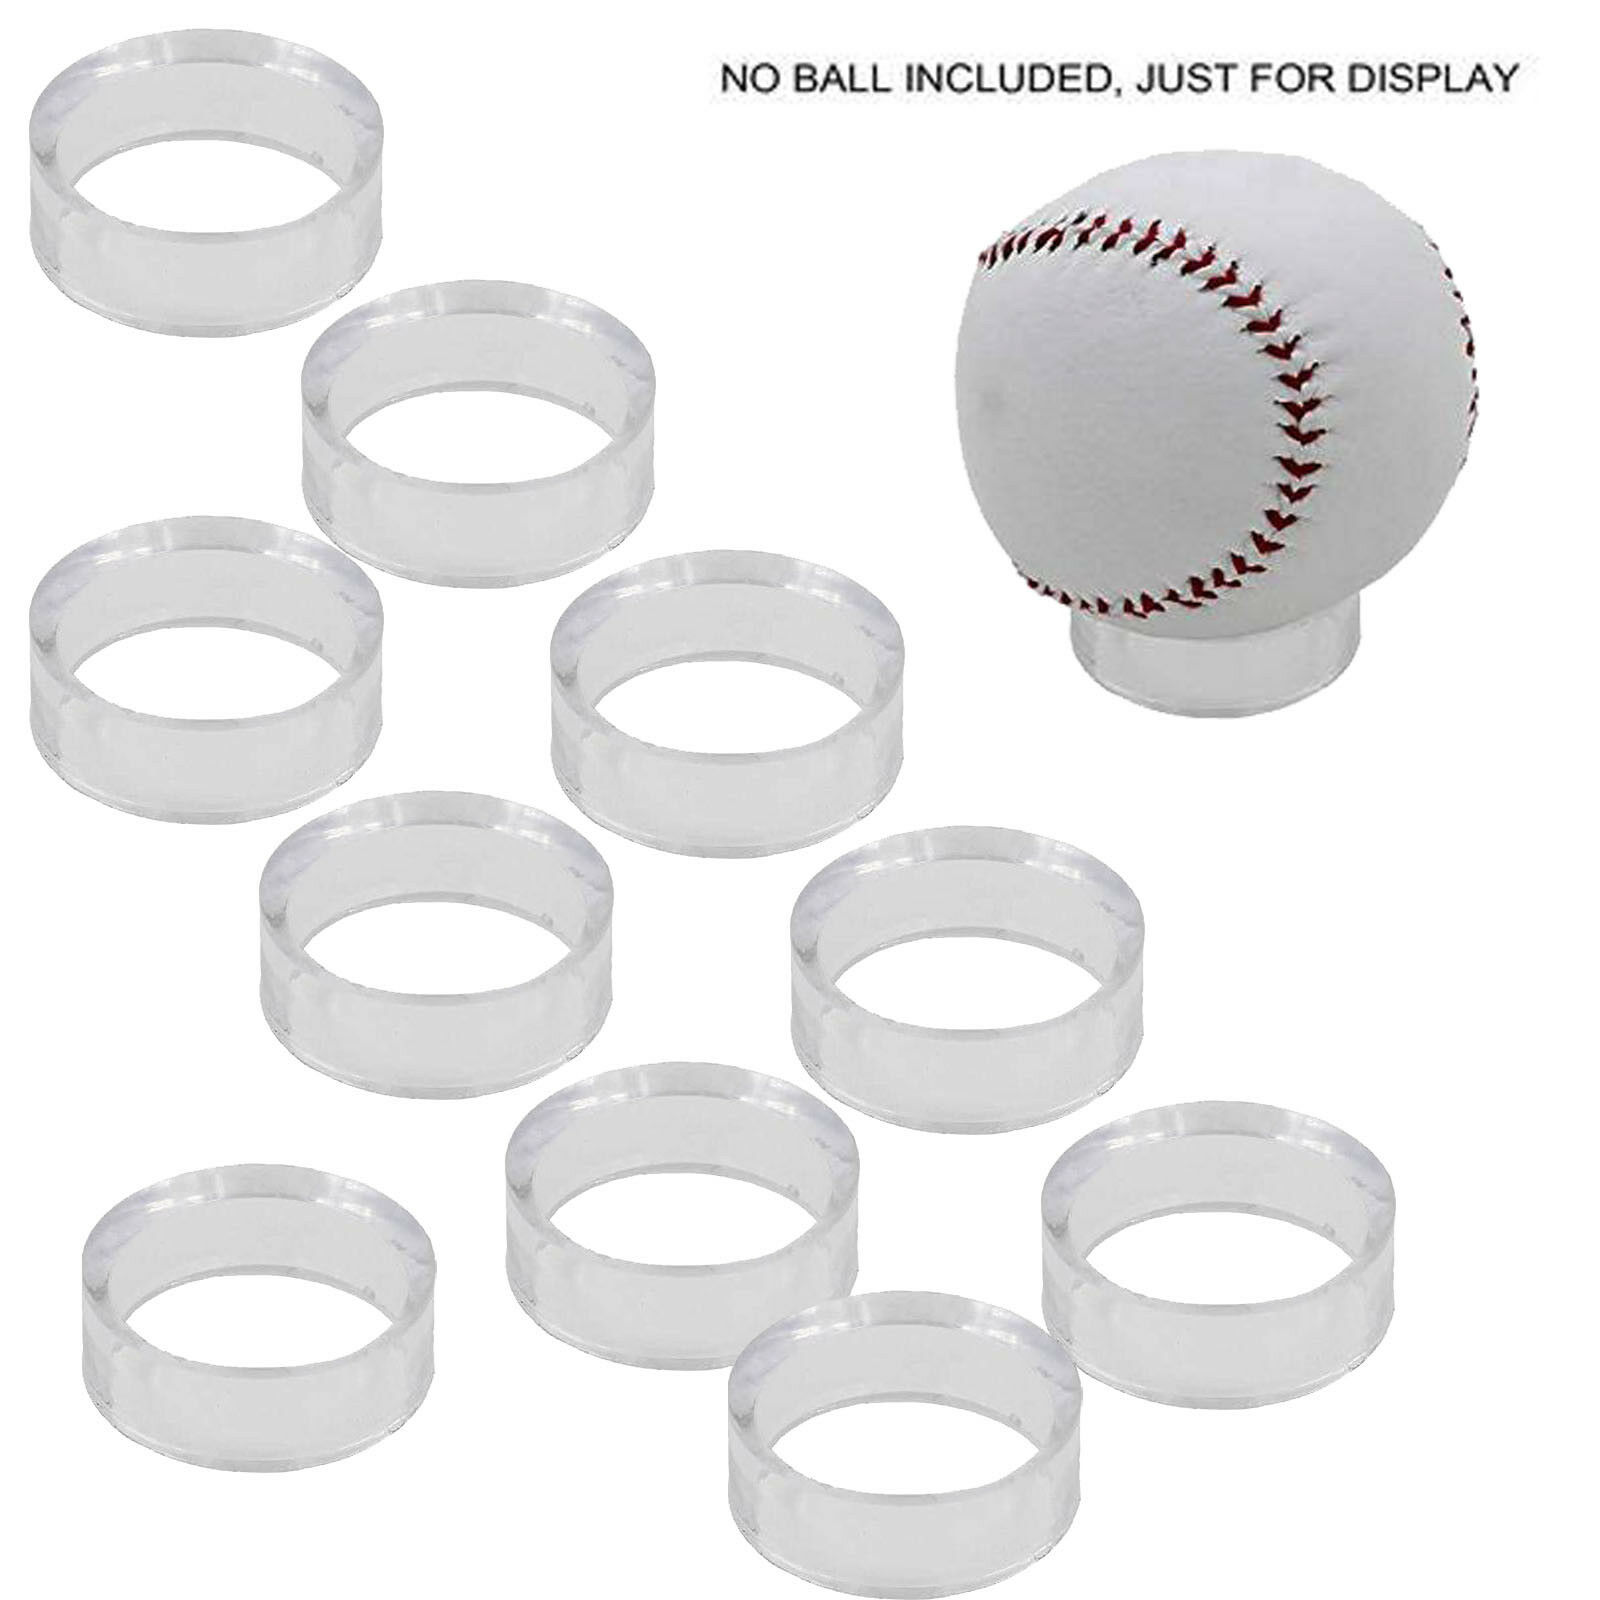 Quantity of 5 Sports Ball Stands